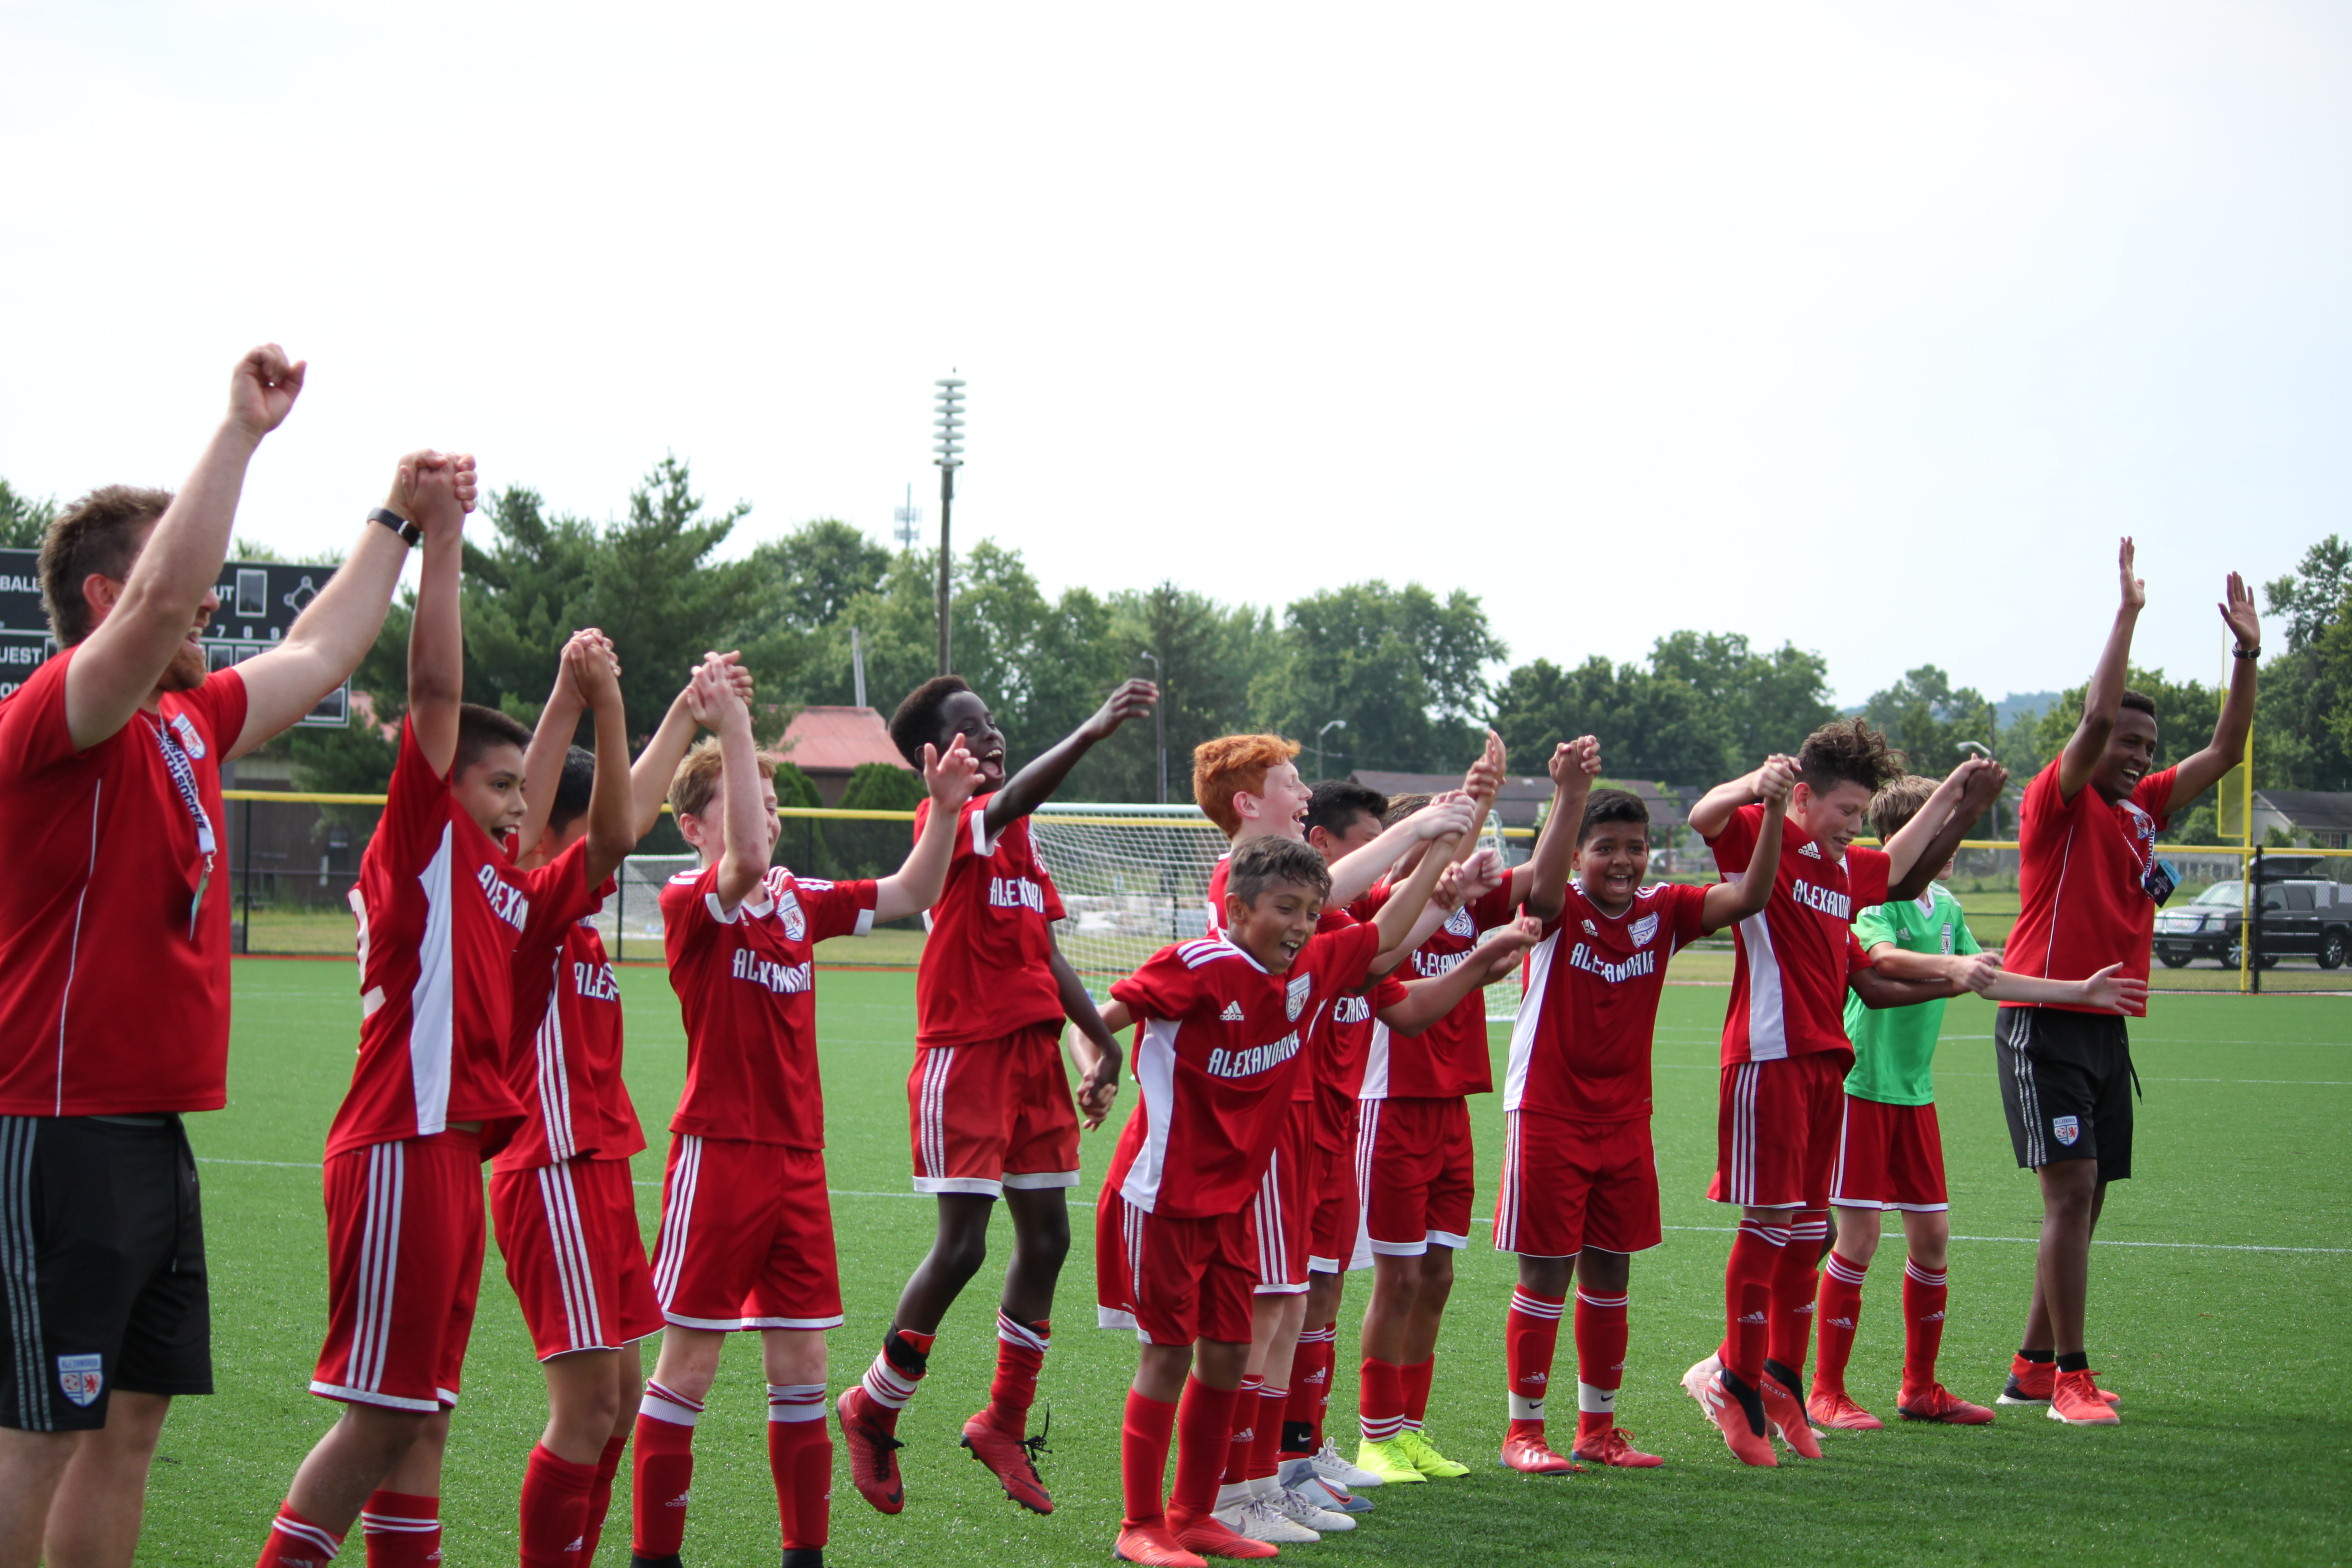 12 year old boys celebrate their victorious soccer tournament.